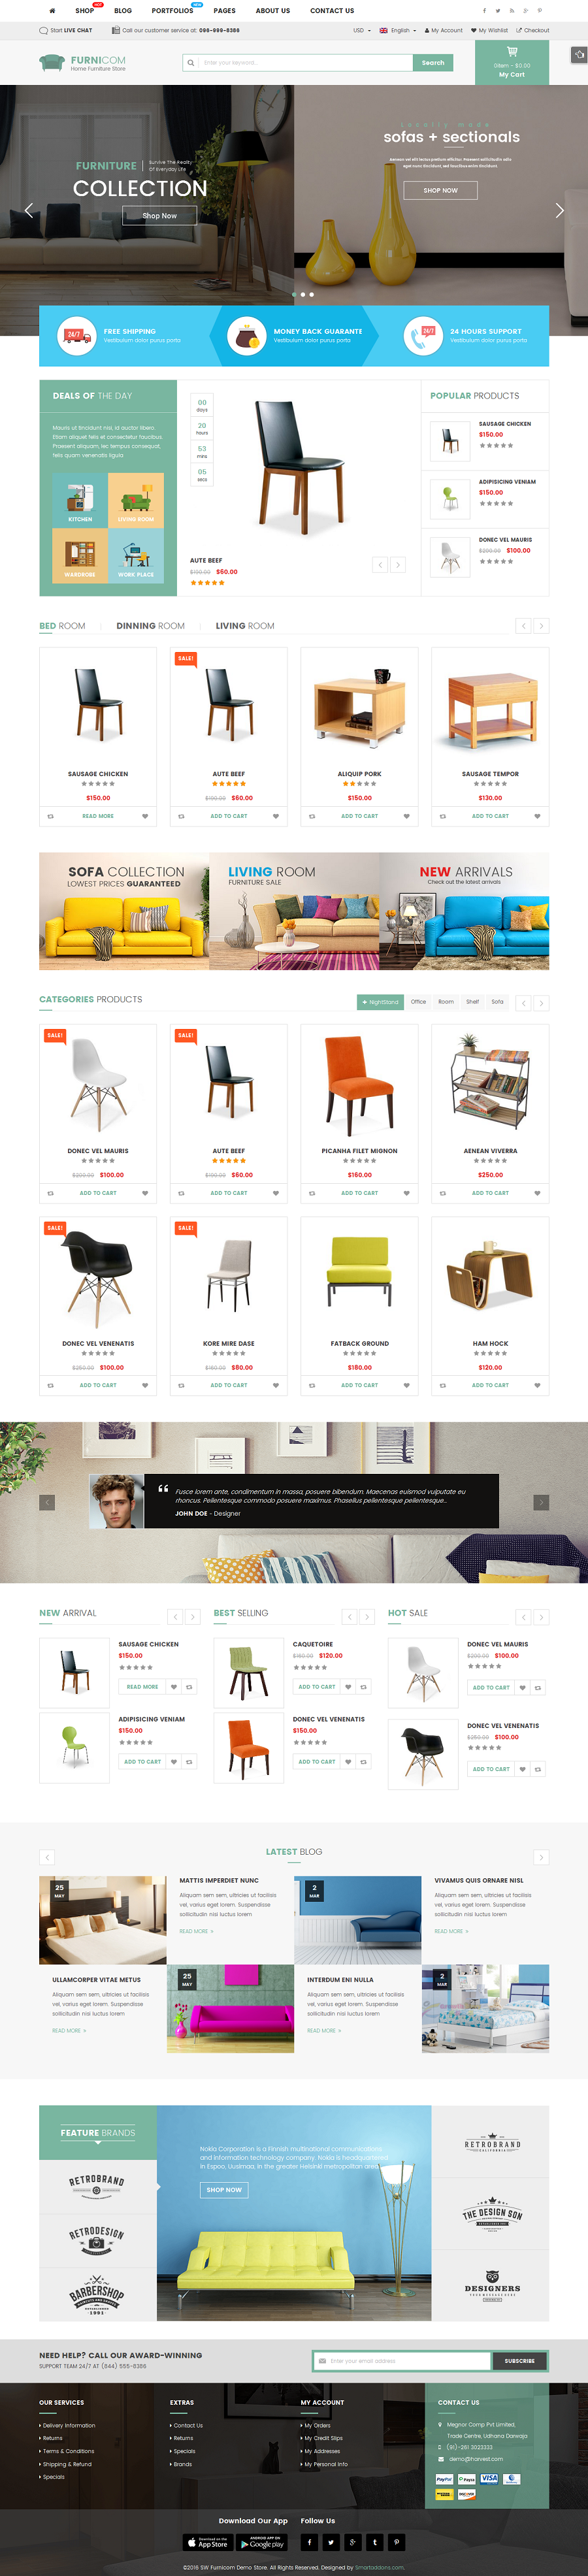 Furnicom   Fastest Furniture Store WooCommerce WordPress Theme (10  Homepages U0026 2 Mobile Layouts)